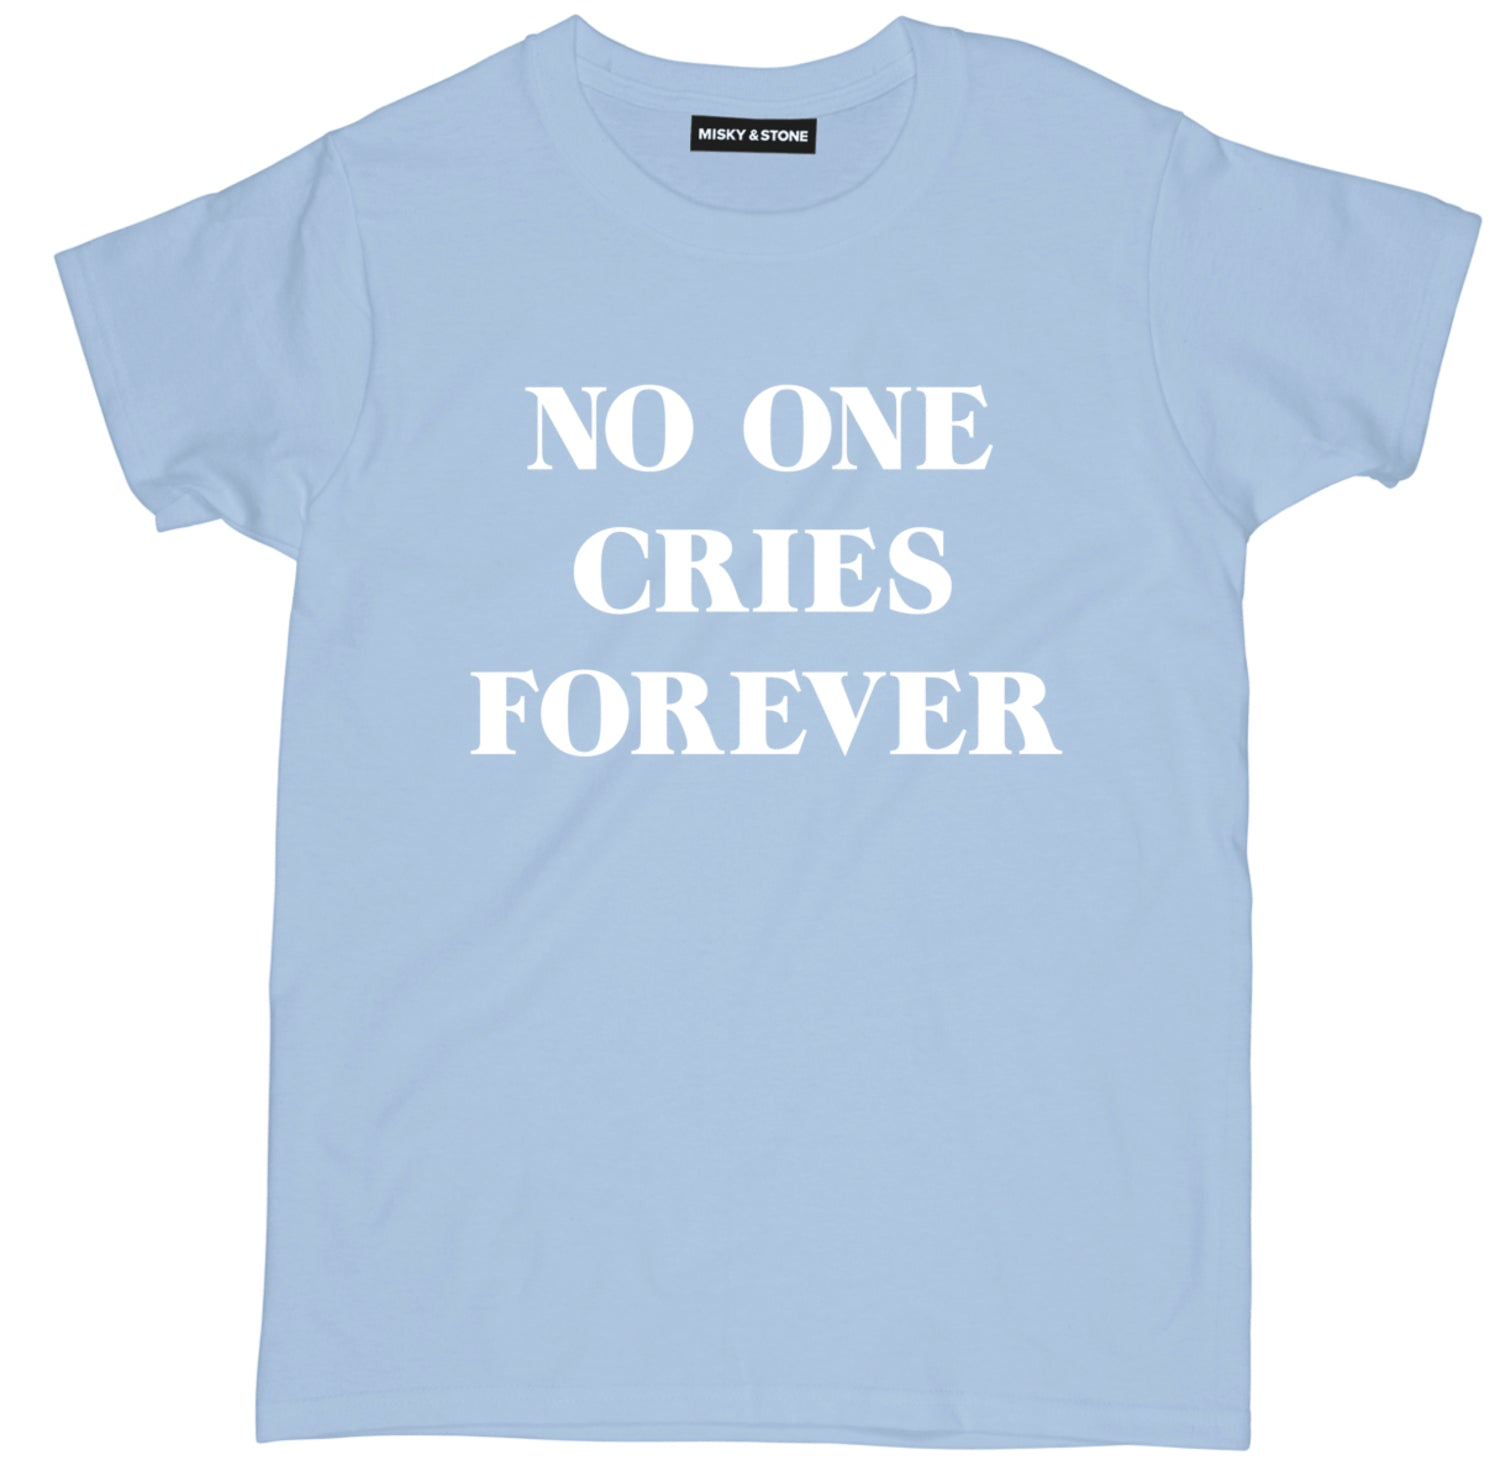 no one cries forever t shirt,